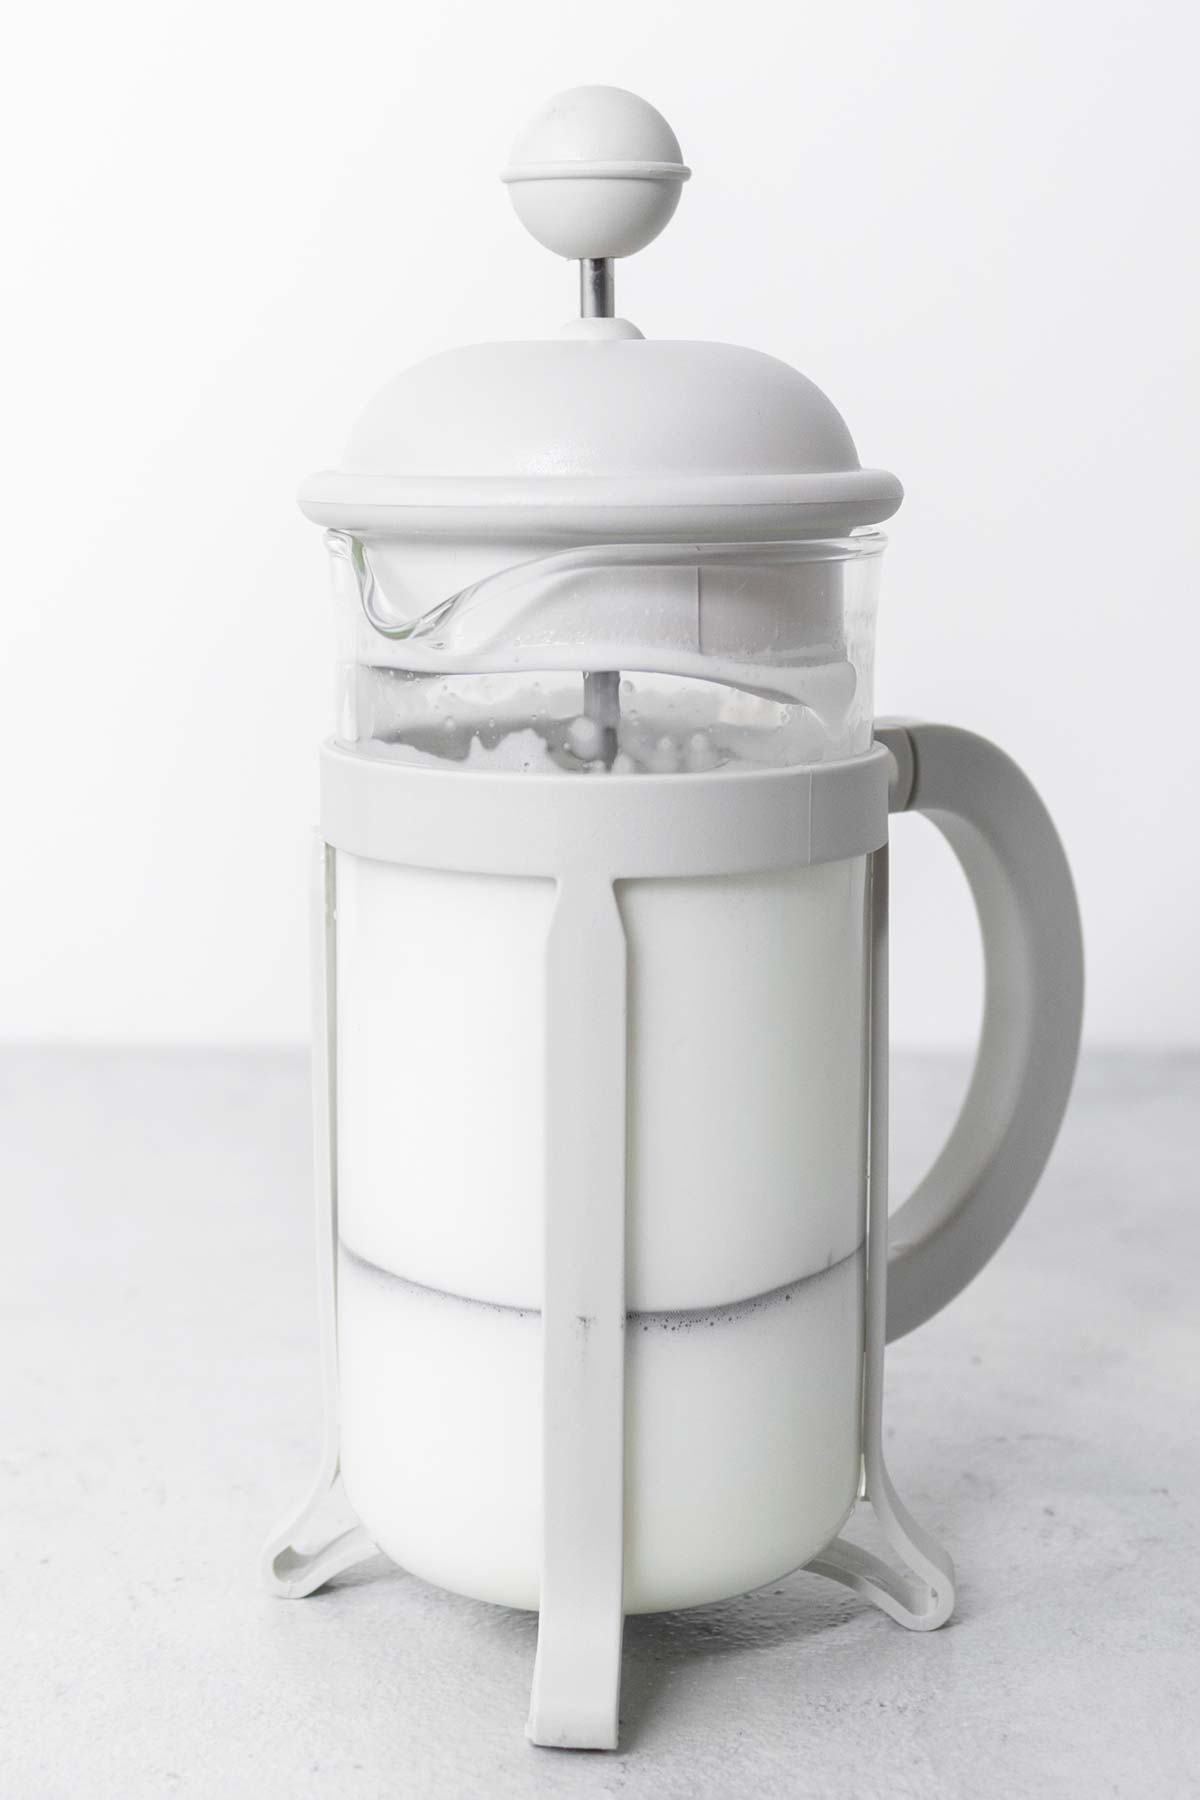 Frothed milk in a French press